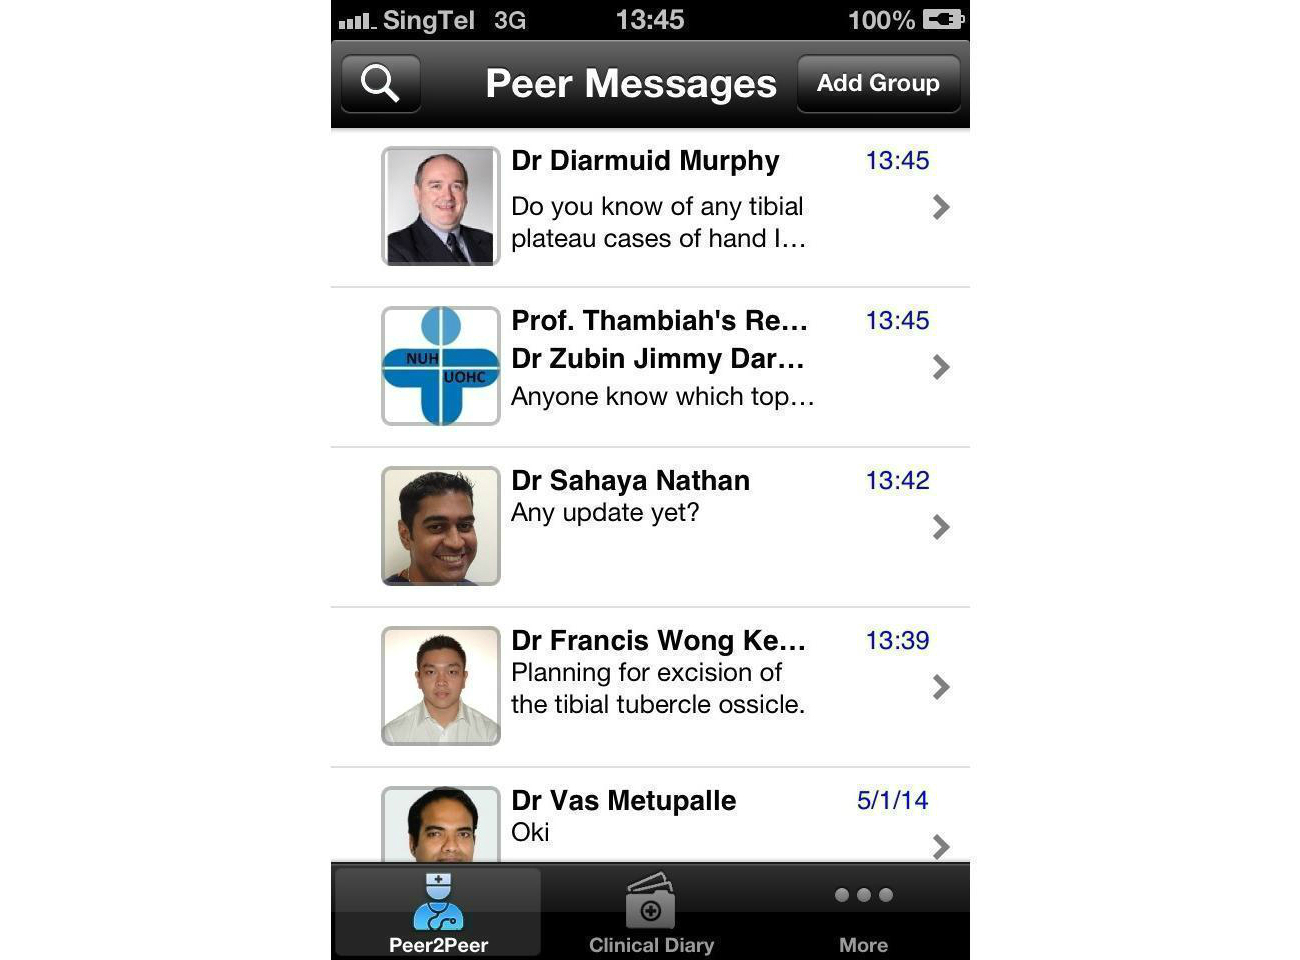 Figure 1. Screenshot of the personal messages user interface.